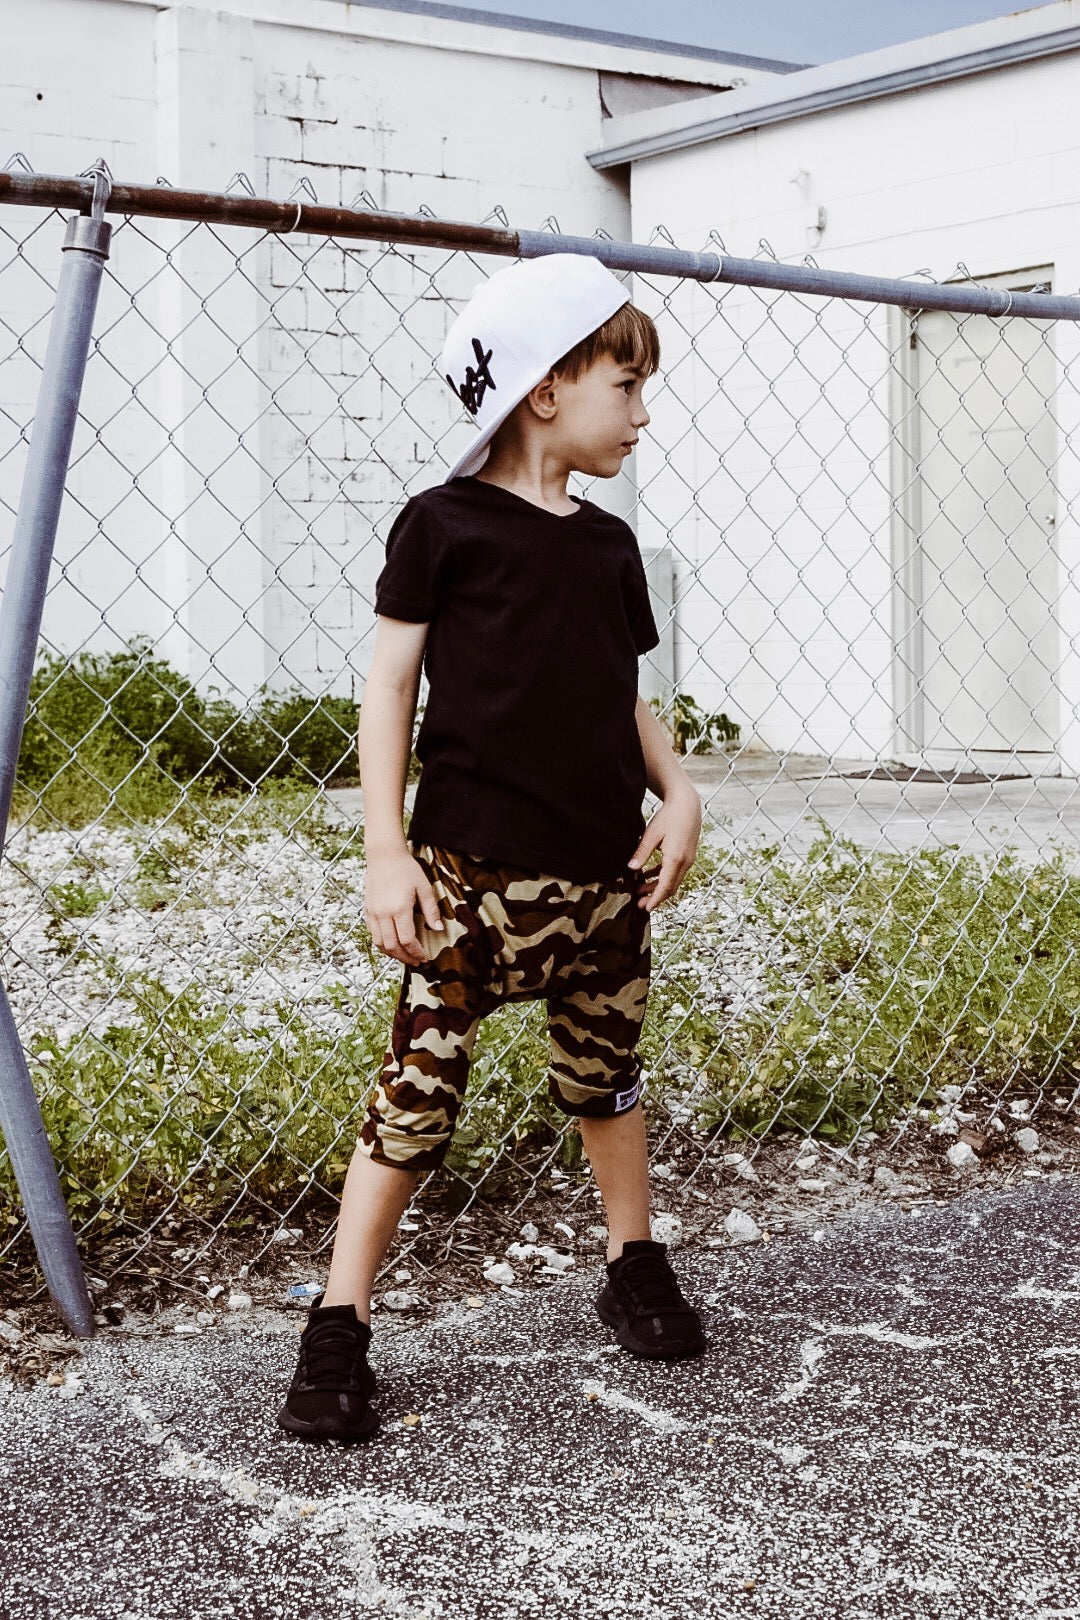 Brooklyn + Fifth City Camo Collection!  City Style meets Edgy Camo, you can't go wrong...especially when it's combined with the quality and comfort Brooklyn + Fifth is known for. Featuring 3 distinct color combinations, we've got a Camo for everyone!  Camo Harem Shorts Toddler BabyCamo Shorts Toddler Baby Boy Brooklyn Fifth